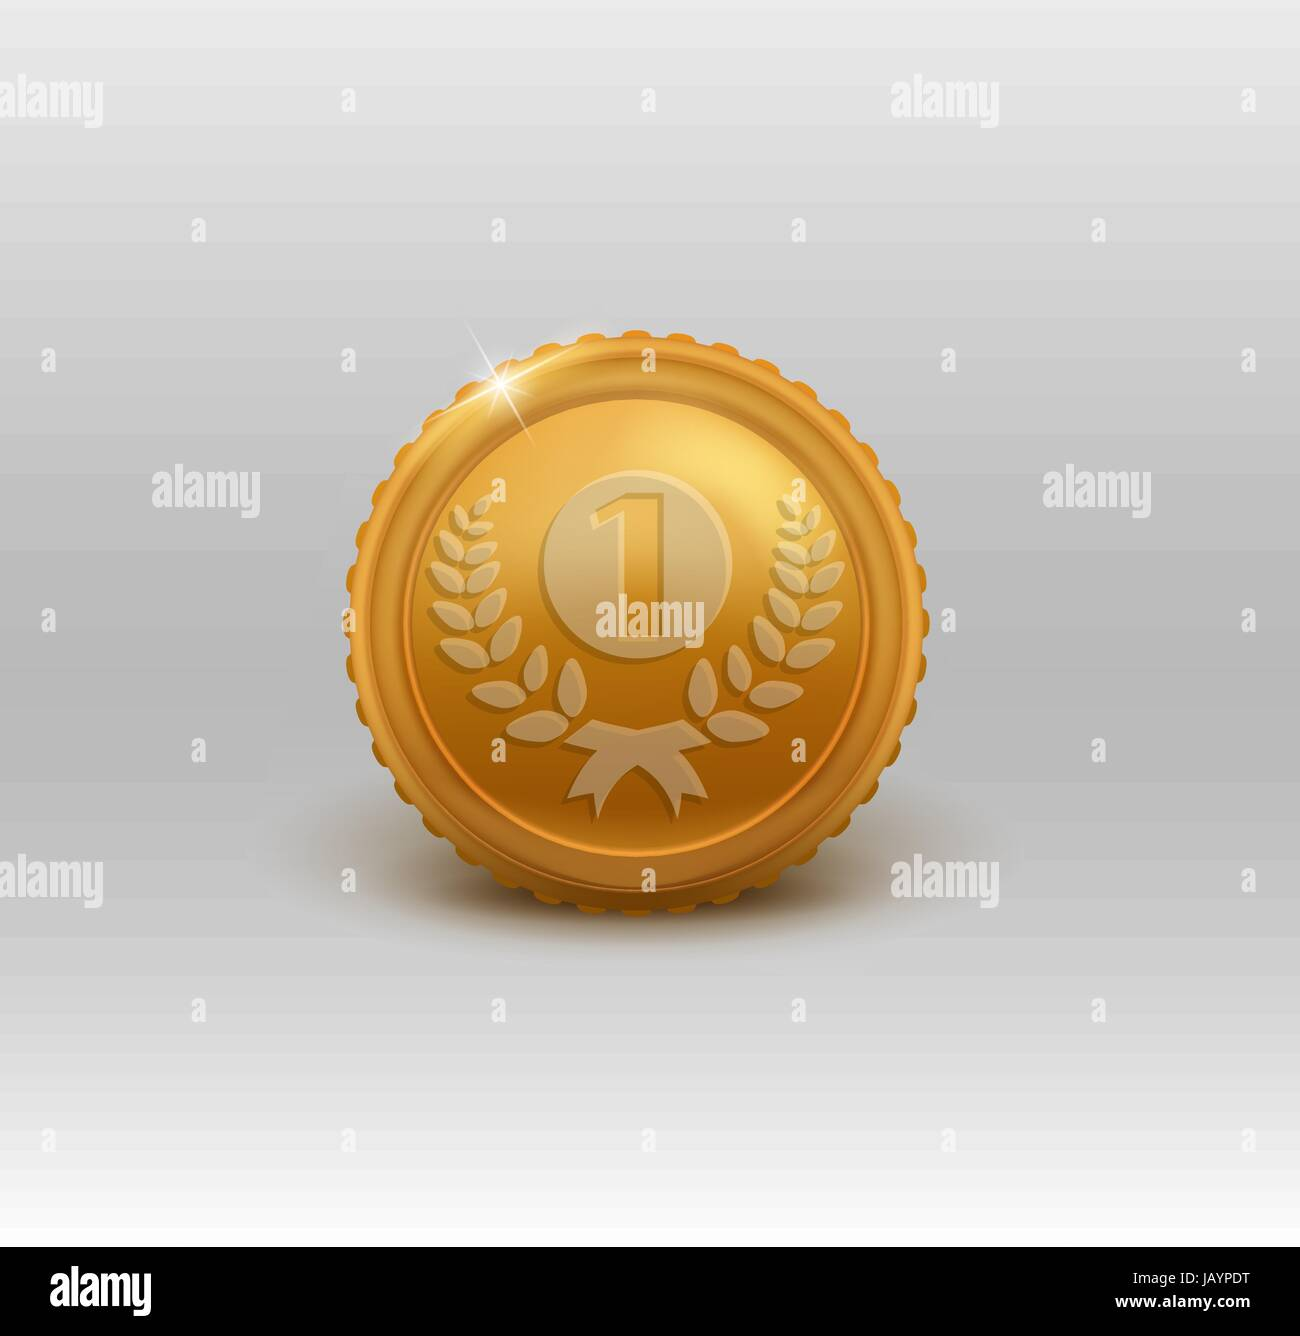 Gold medal for first place. Vector illustration. - Stock Vector